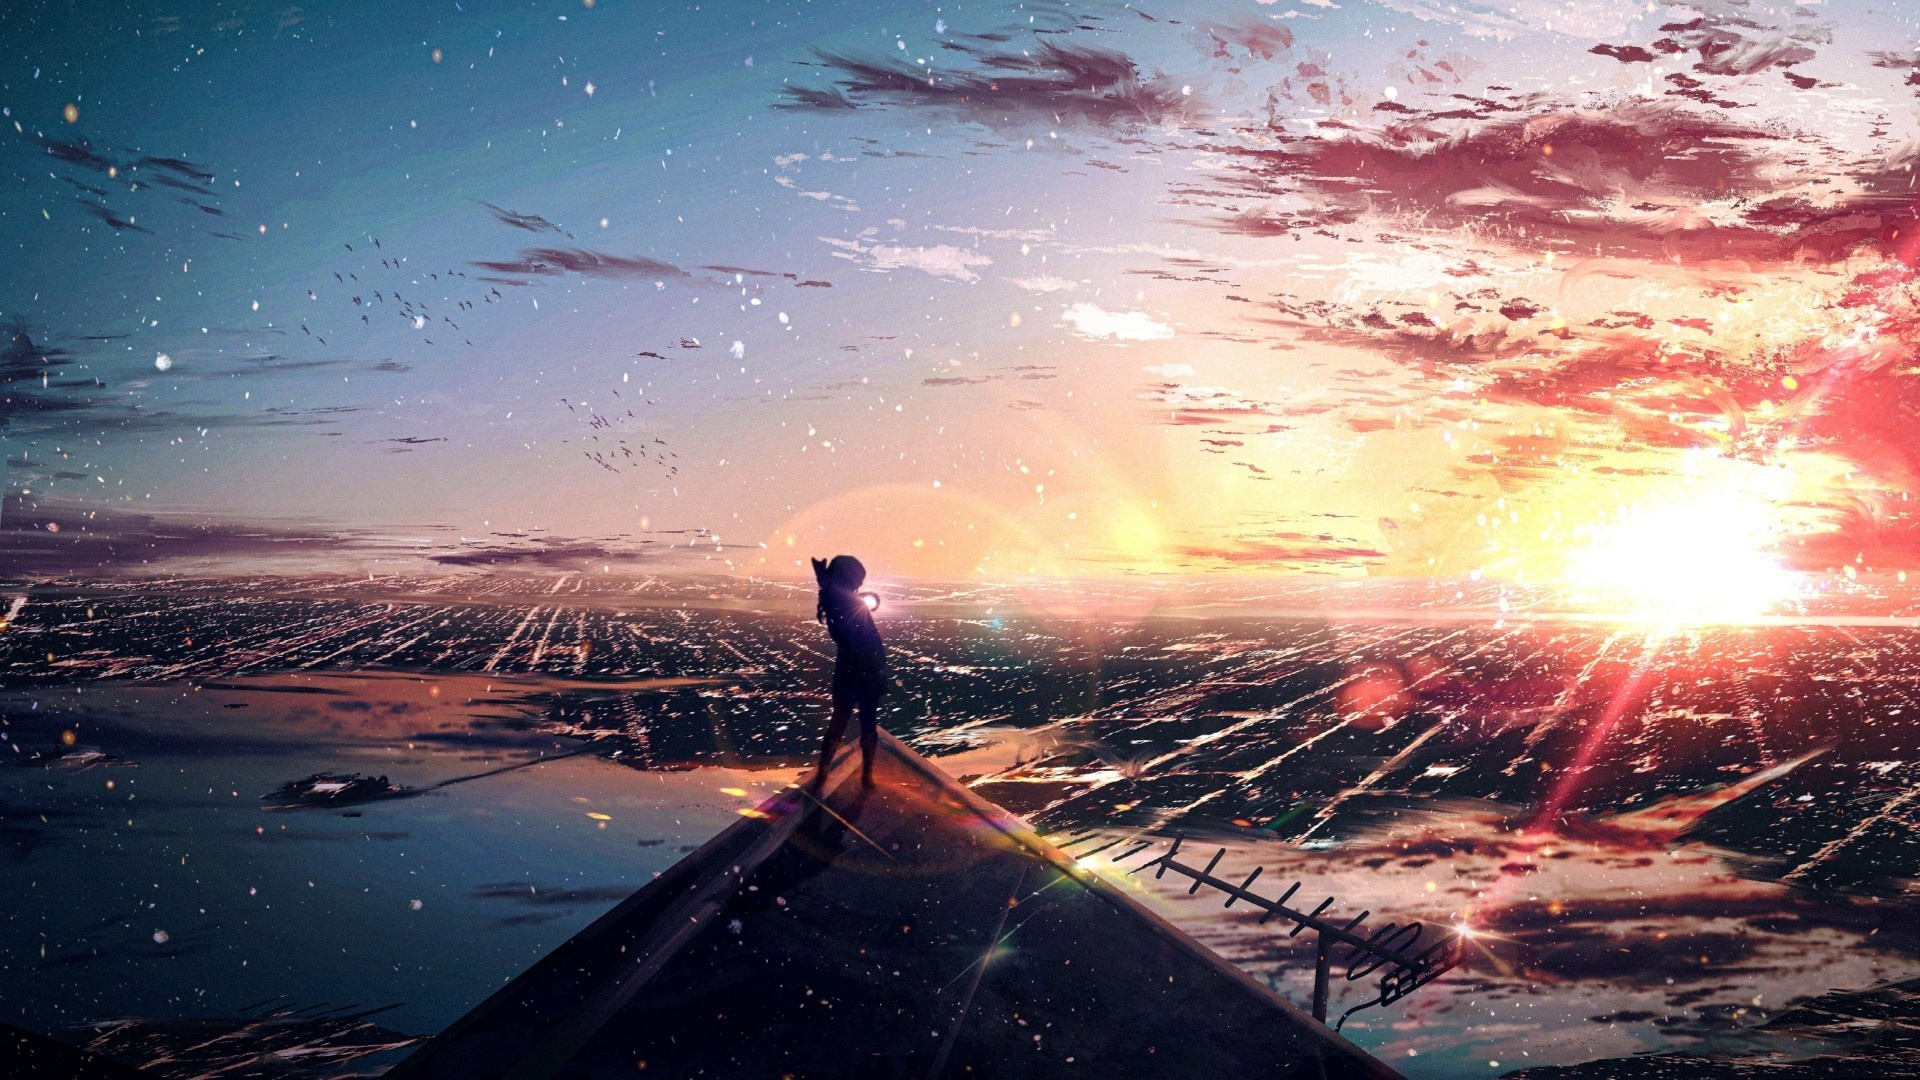 Anime Landscape With Clouds cool background